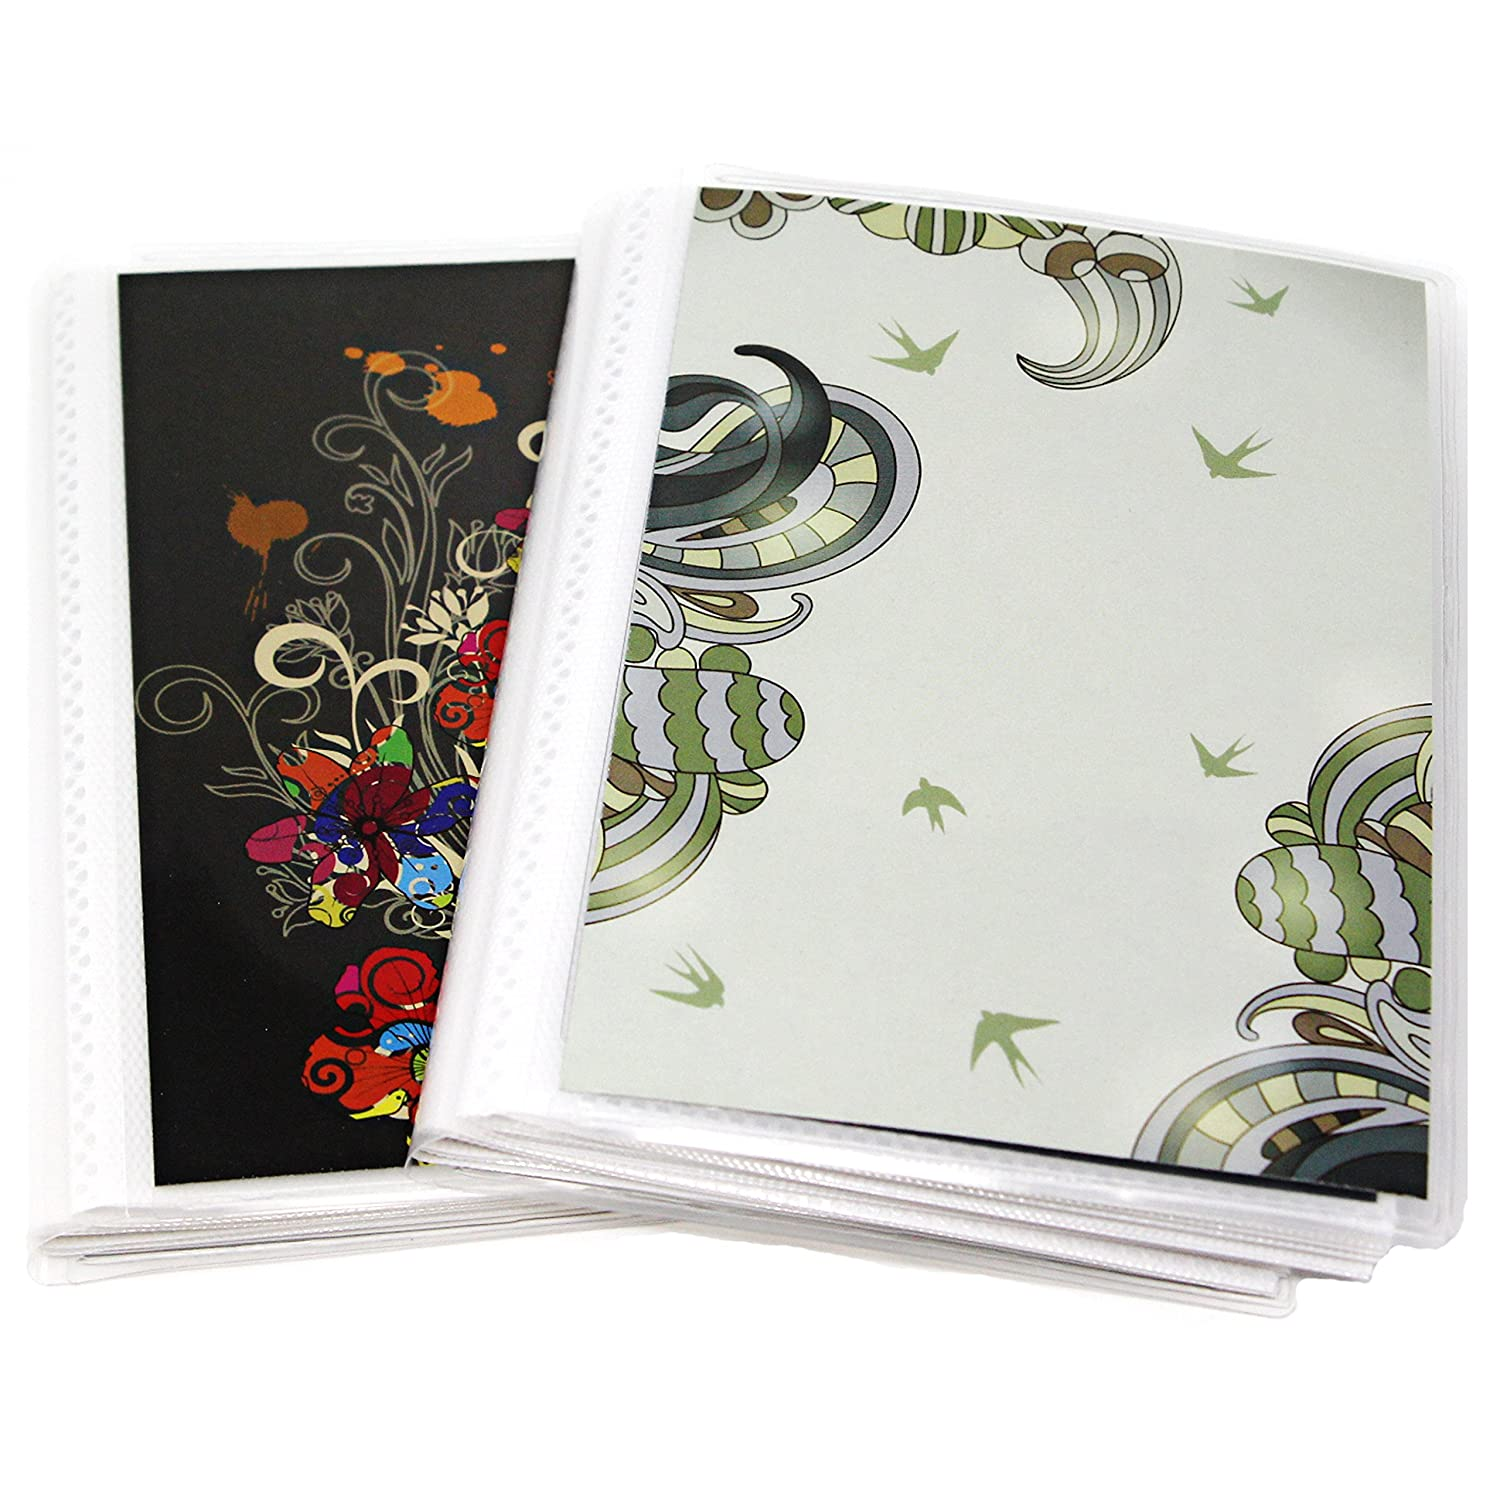 4 x 6 Photo Albums Pack of 2, Each Mini Photo Album Holds Up to 60 4x6 Photos. Flexible, removable covers come in random, assorted patterns and colors. CocoPolka